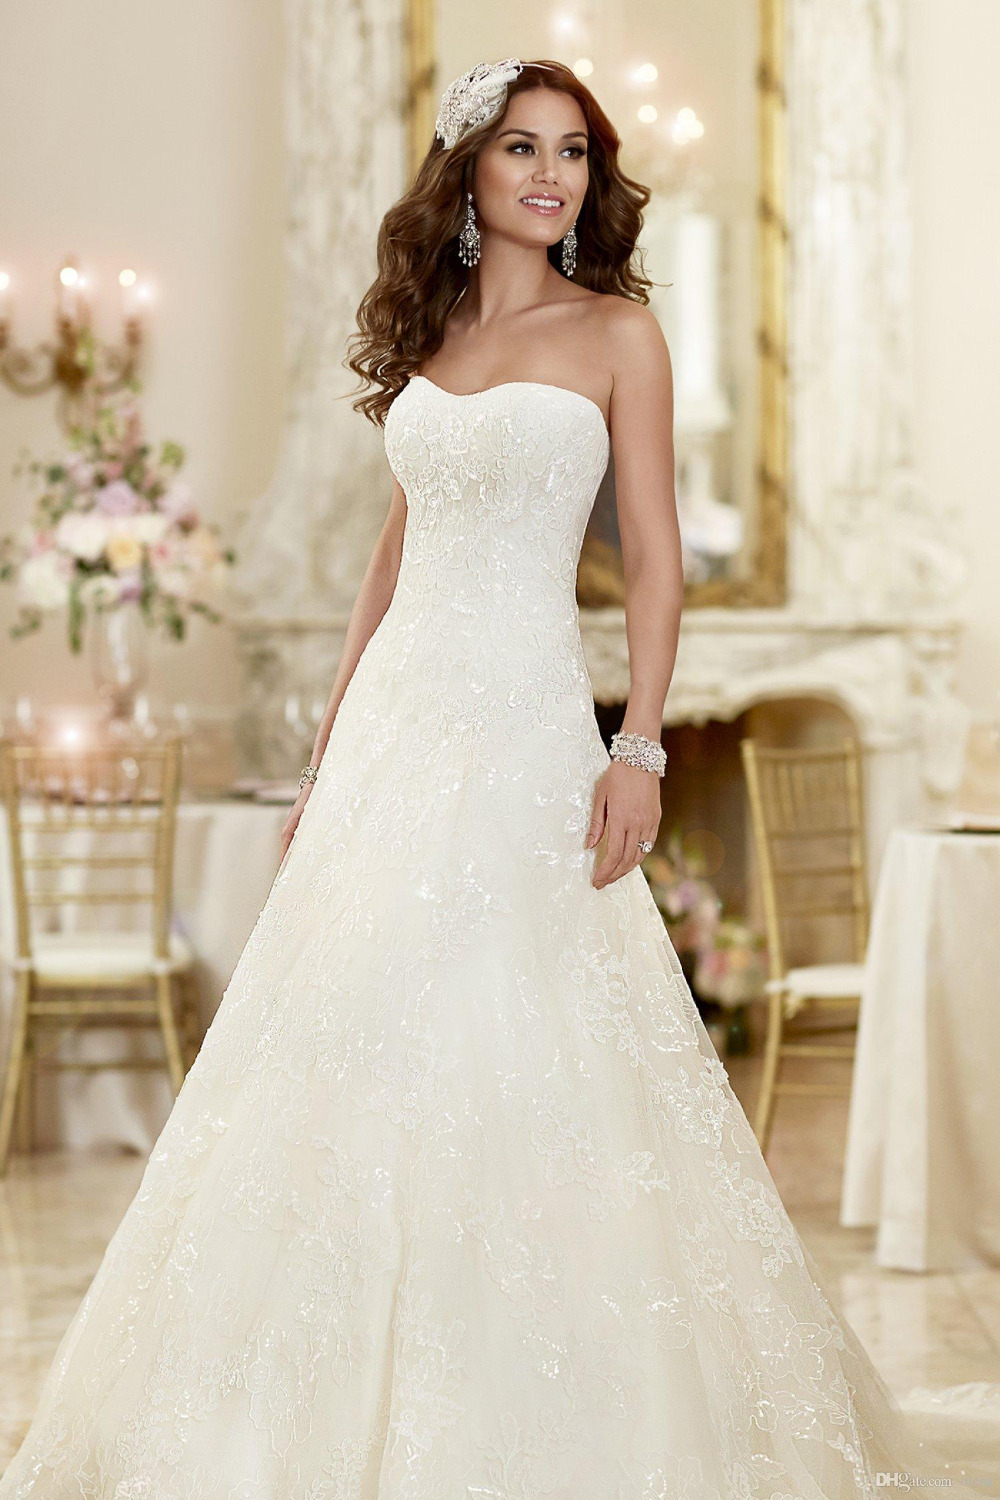 Compare Prices on Simple Elegant Wedding Dress- Online Shopping ...